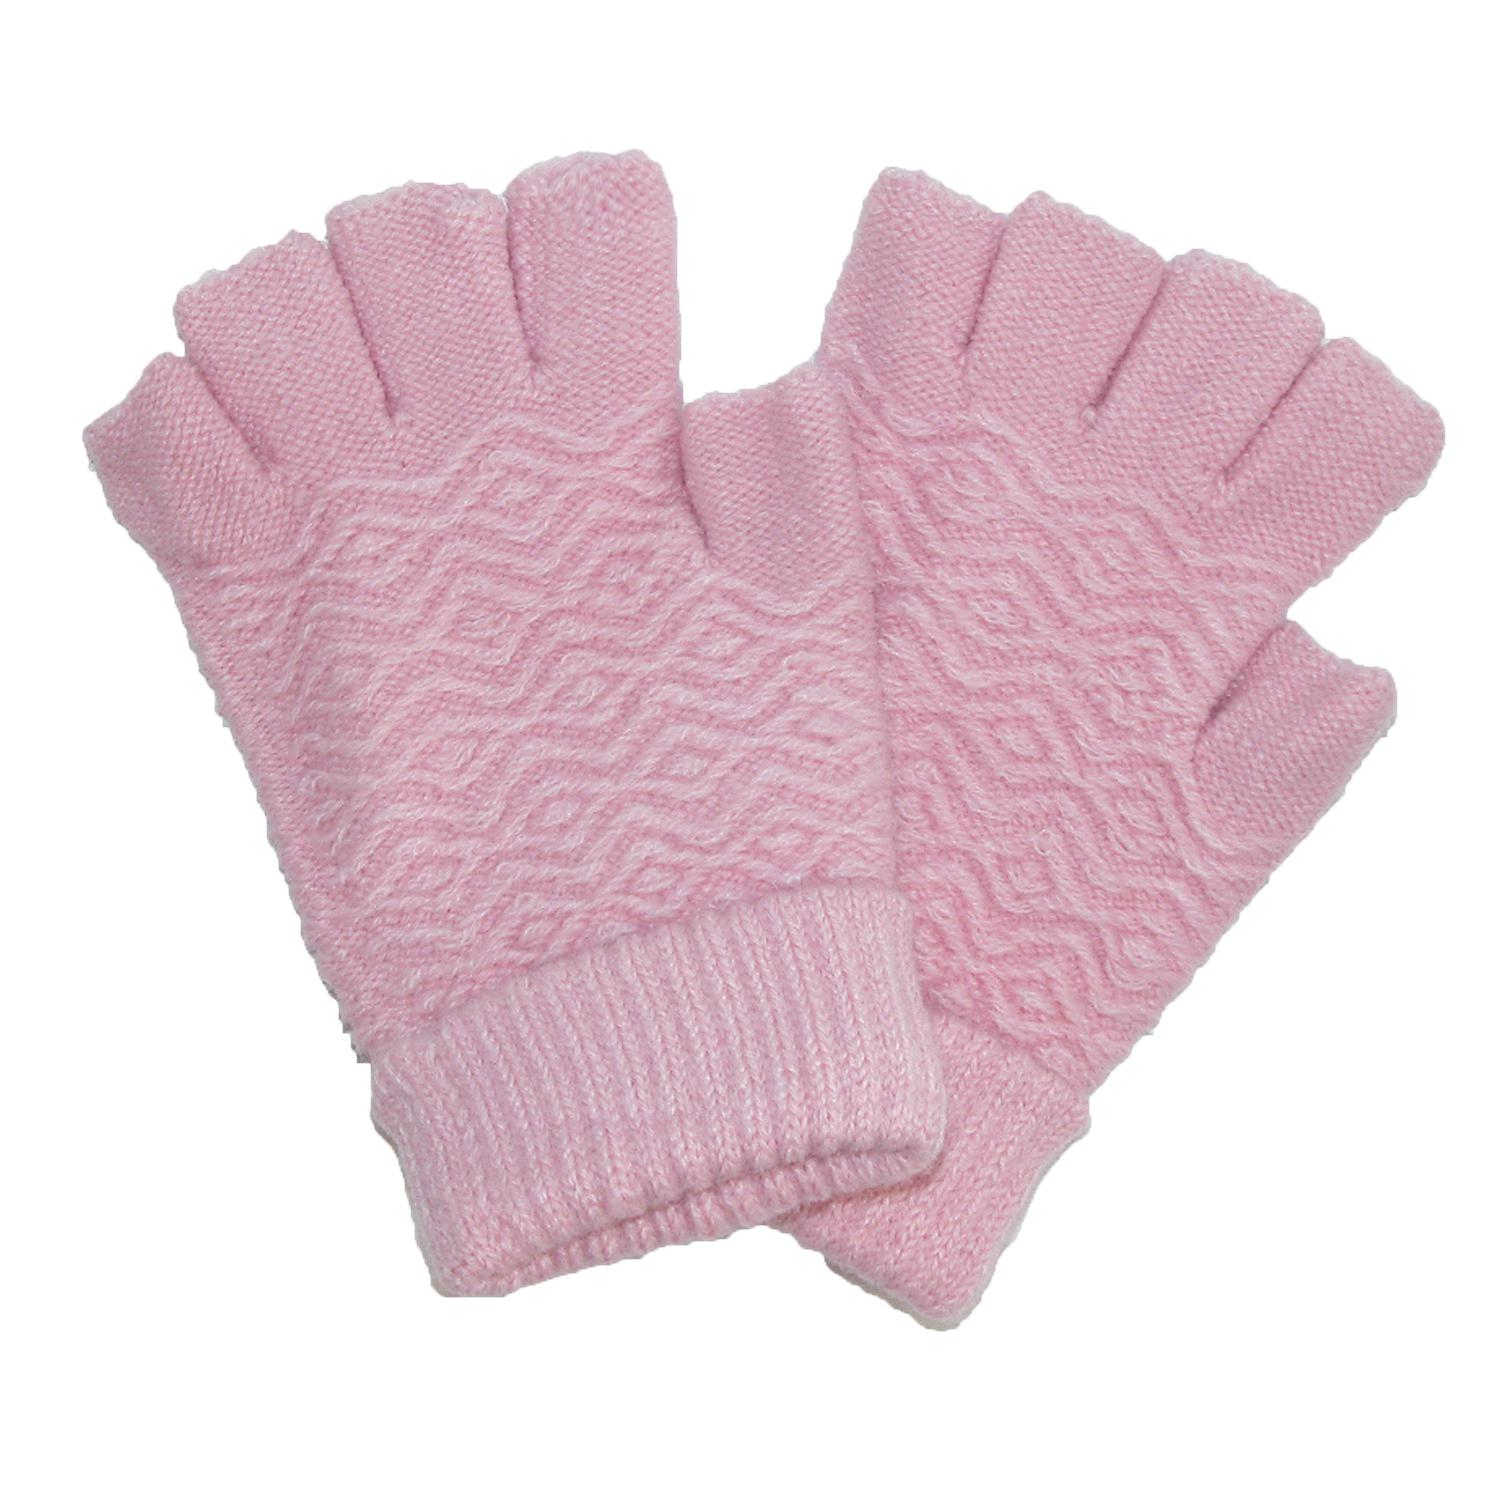 Ctm Womens Chenille Fingerless Winter Gloves